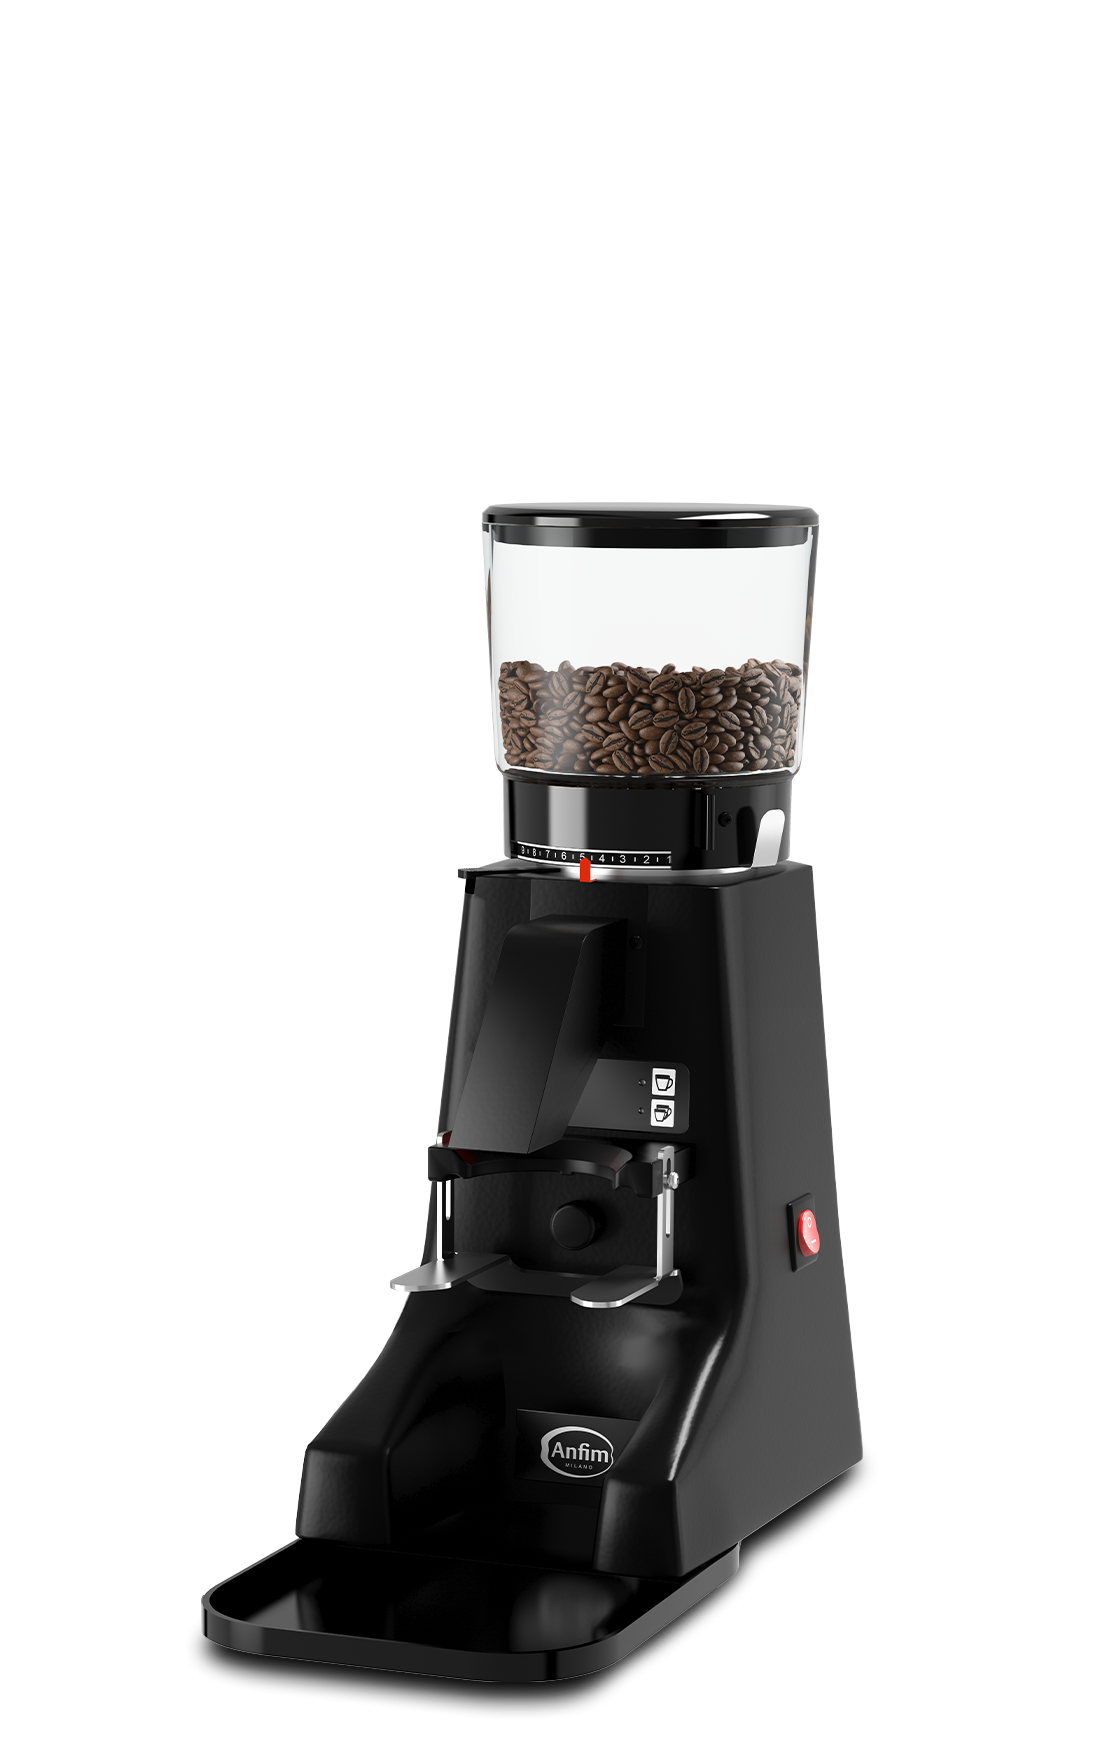 Anfim Best On Demand Electronic espresso grinder